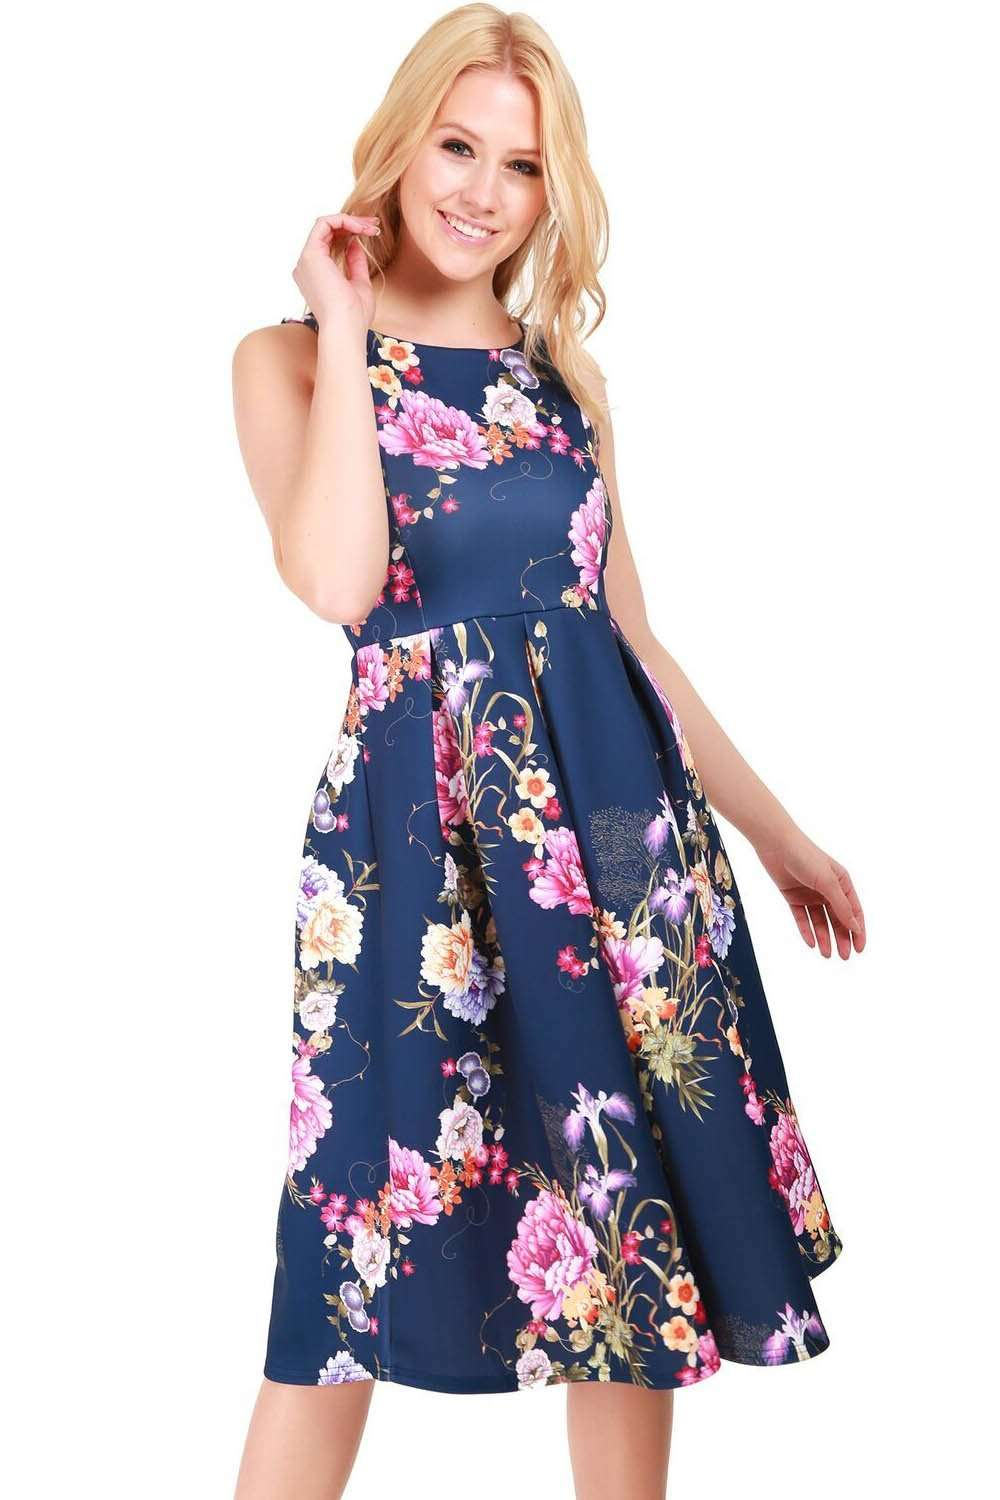 Sleeveless Navy Floral Pleated Midi Skater Dress - bejealous-com